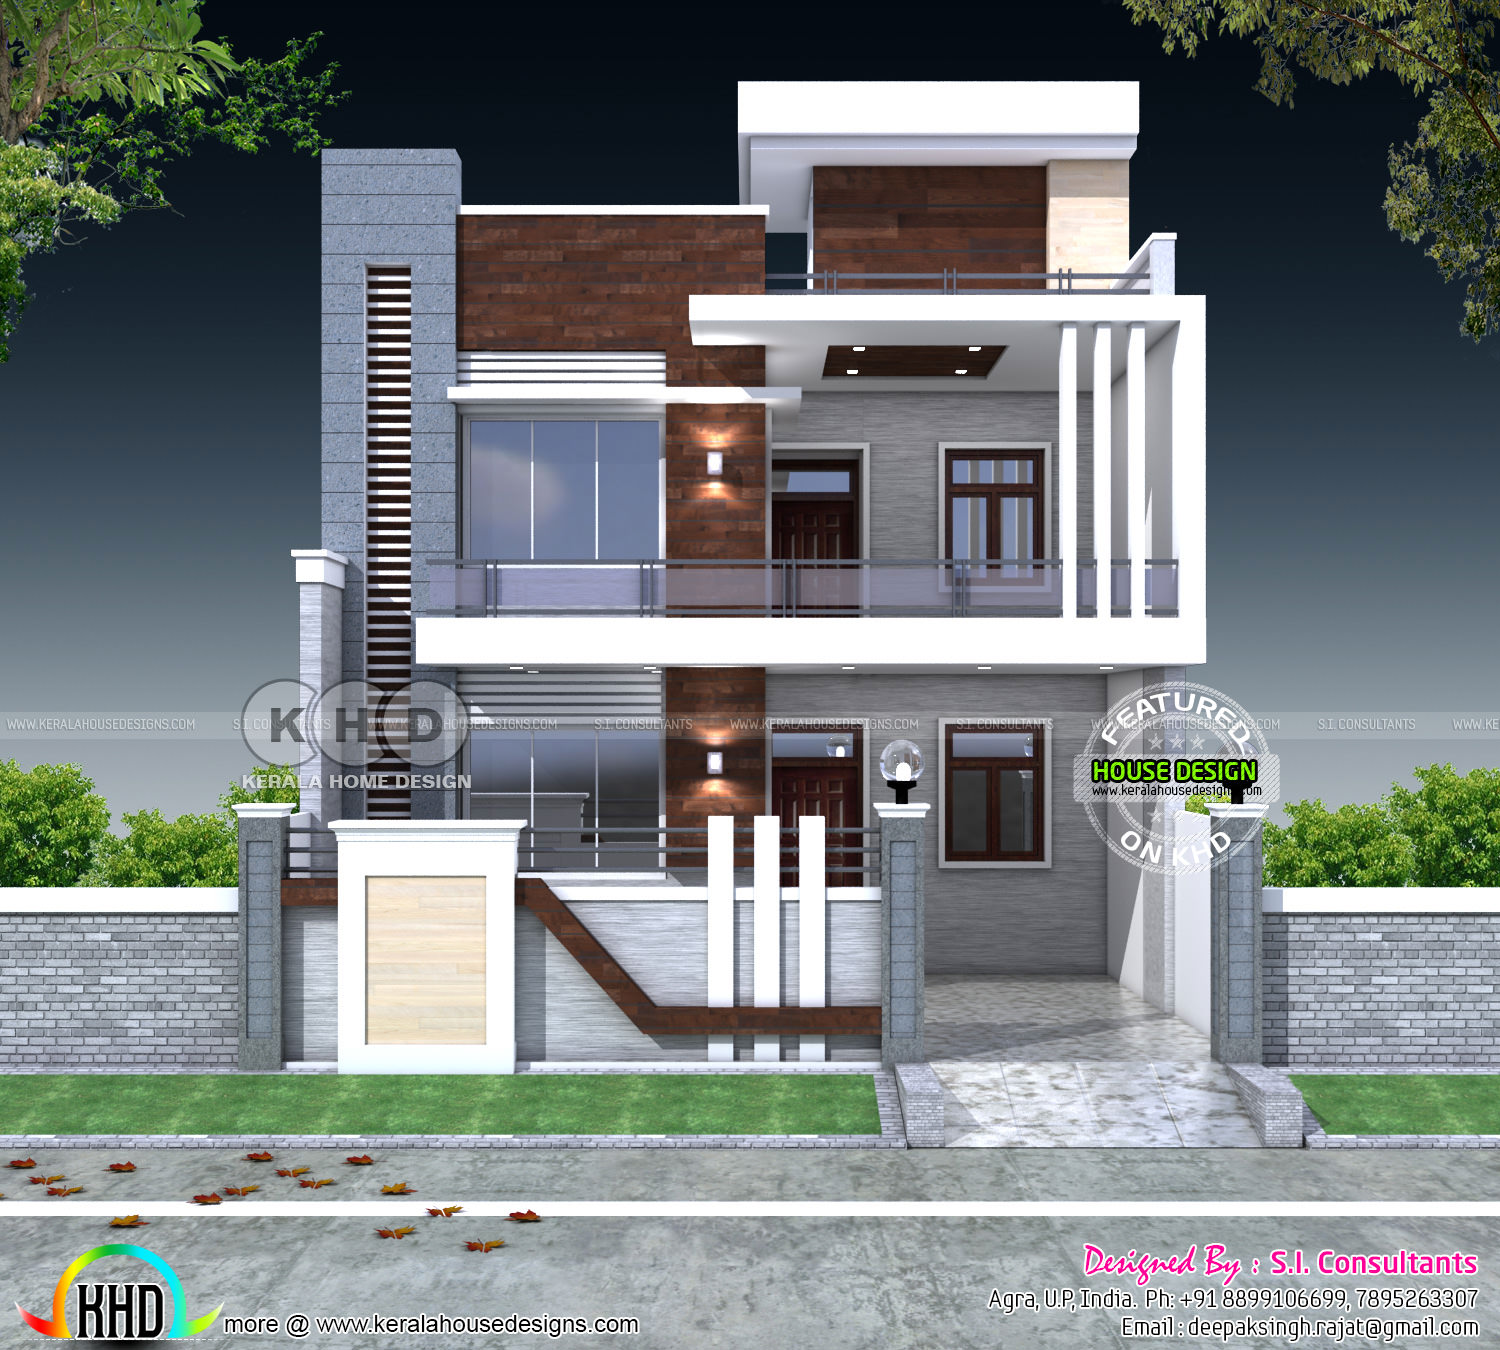 Charming First Floor Area: 1500 Sq.ft. Total Area : 3000 Sq.ft. Plot Area : 1800  Sq.feet ( Land 30u0027x 60u0027) No. Of Bedrooms : 5. Design Style : Contemporary